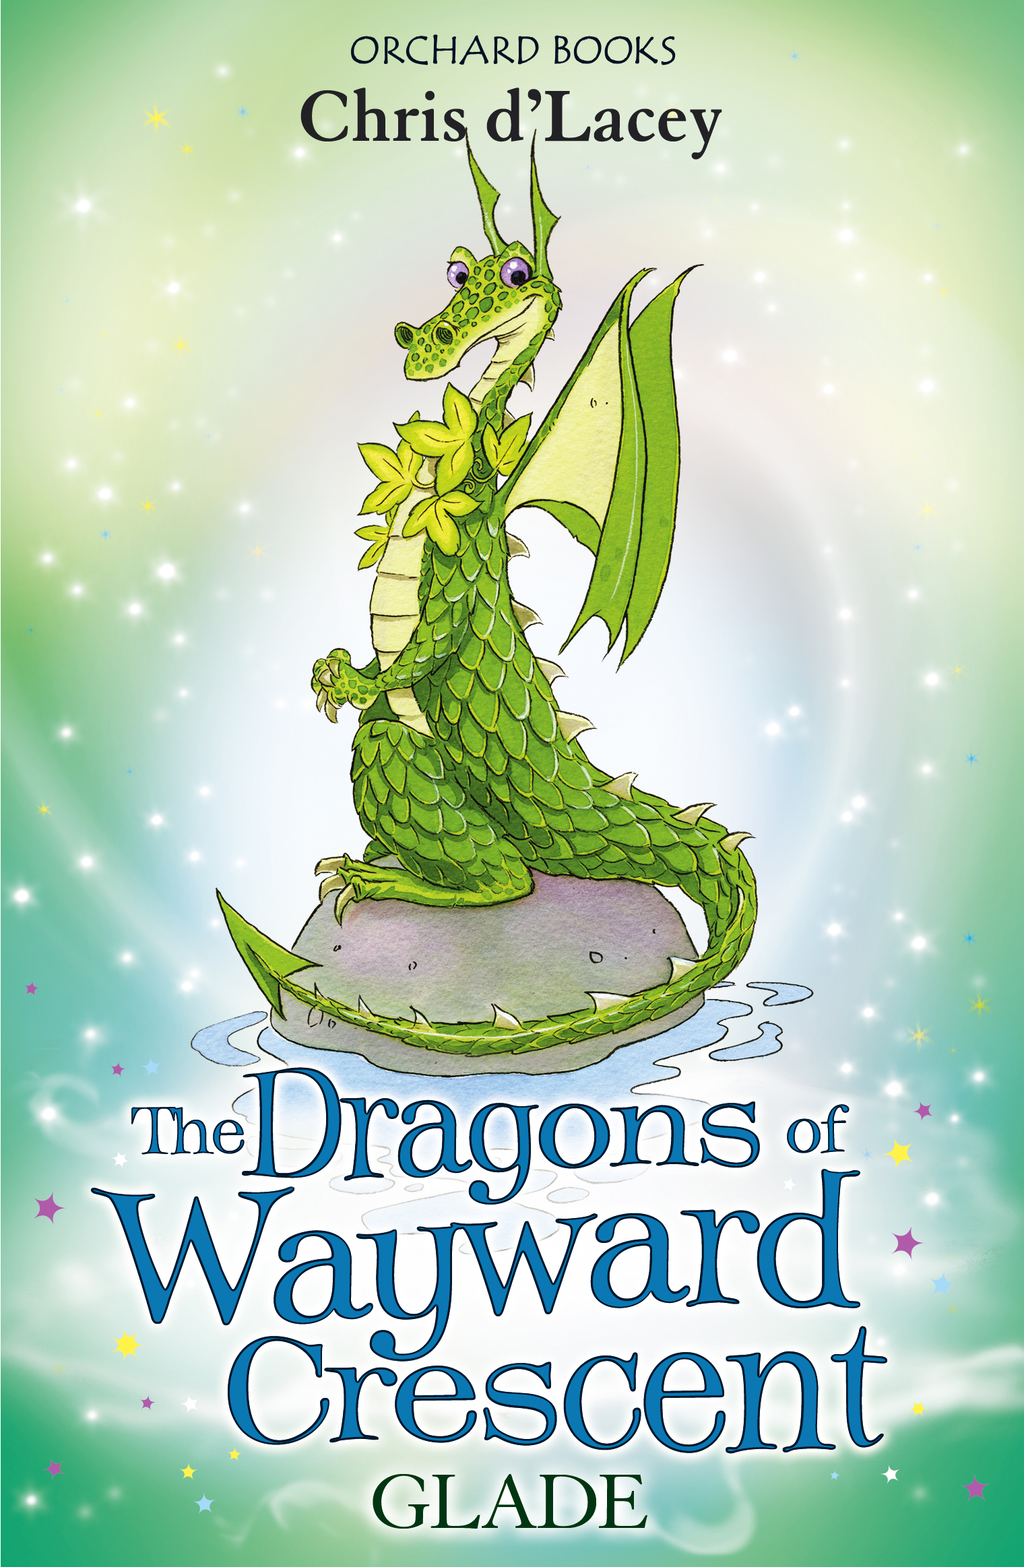 The Dragons of Wayward Crescent: Glade